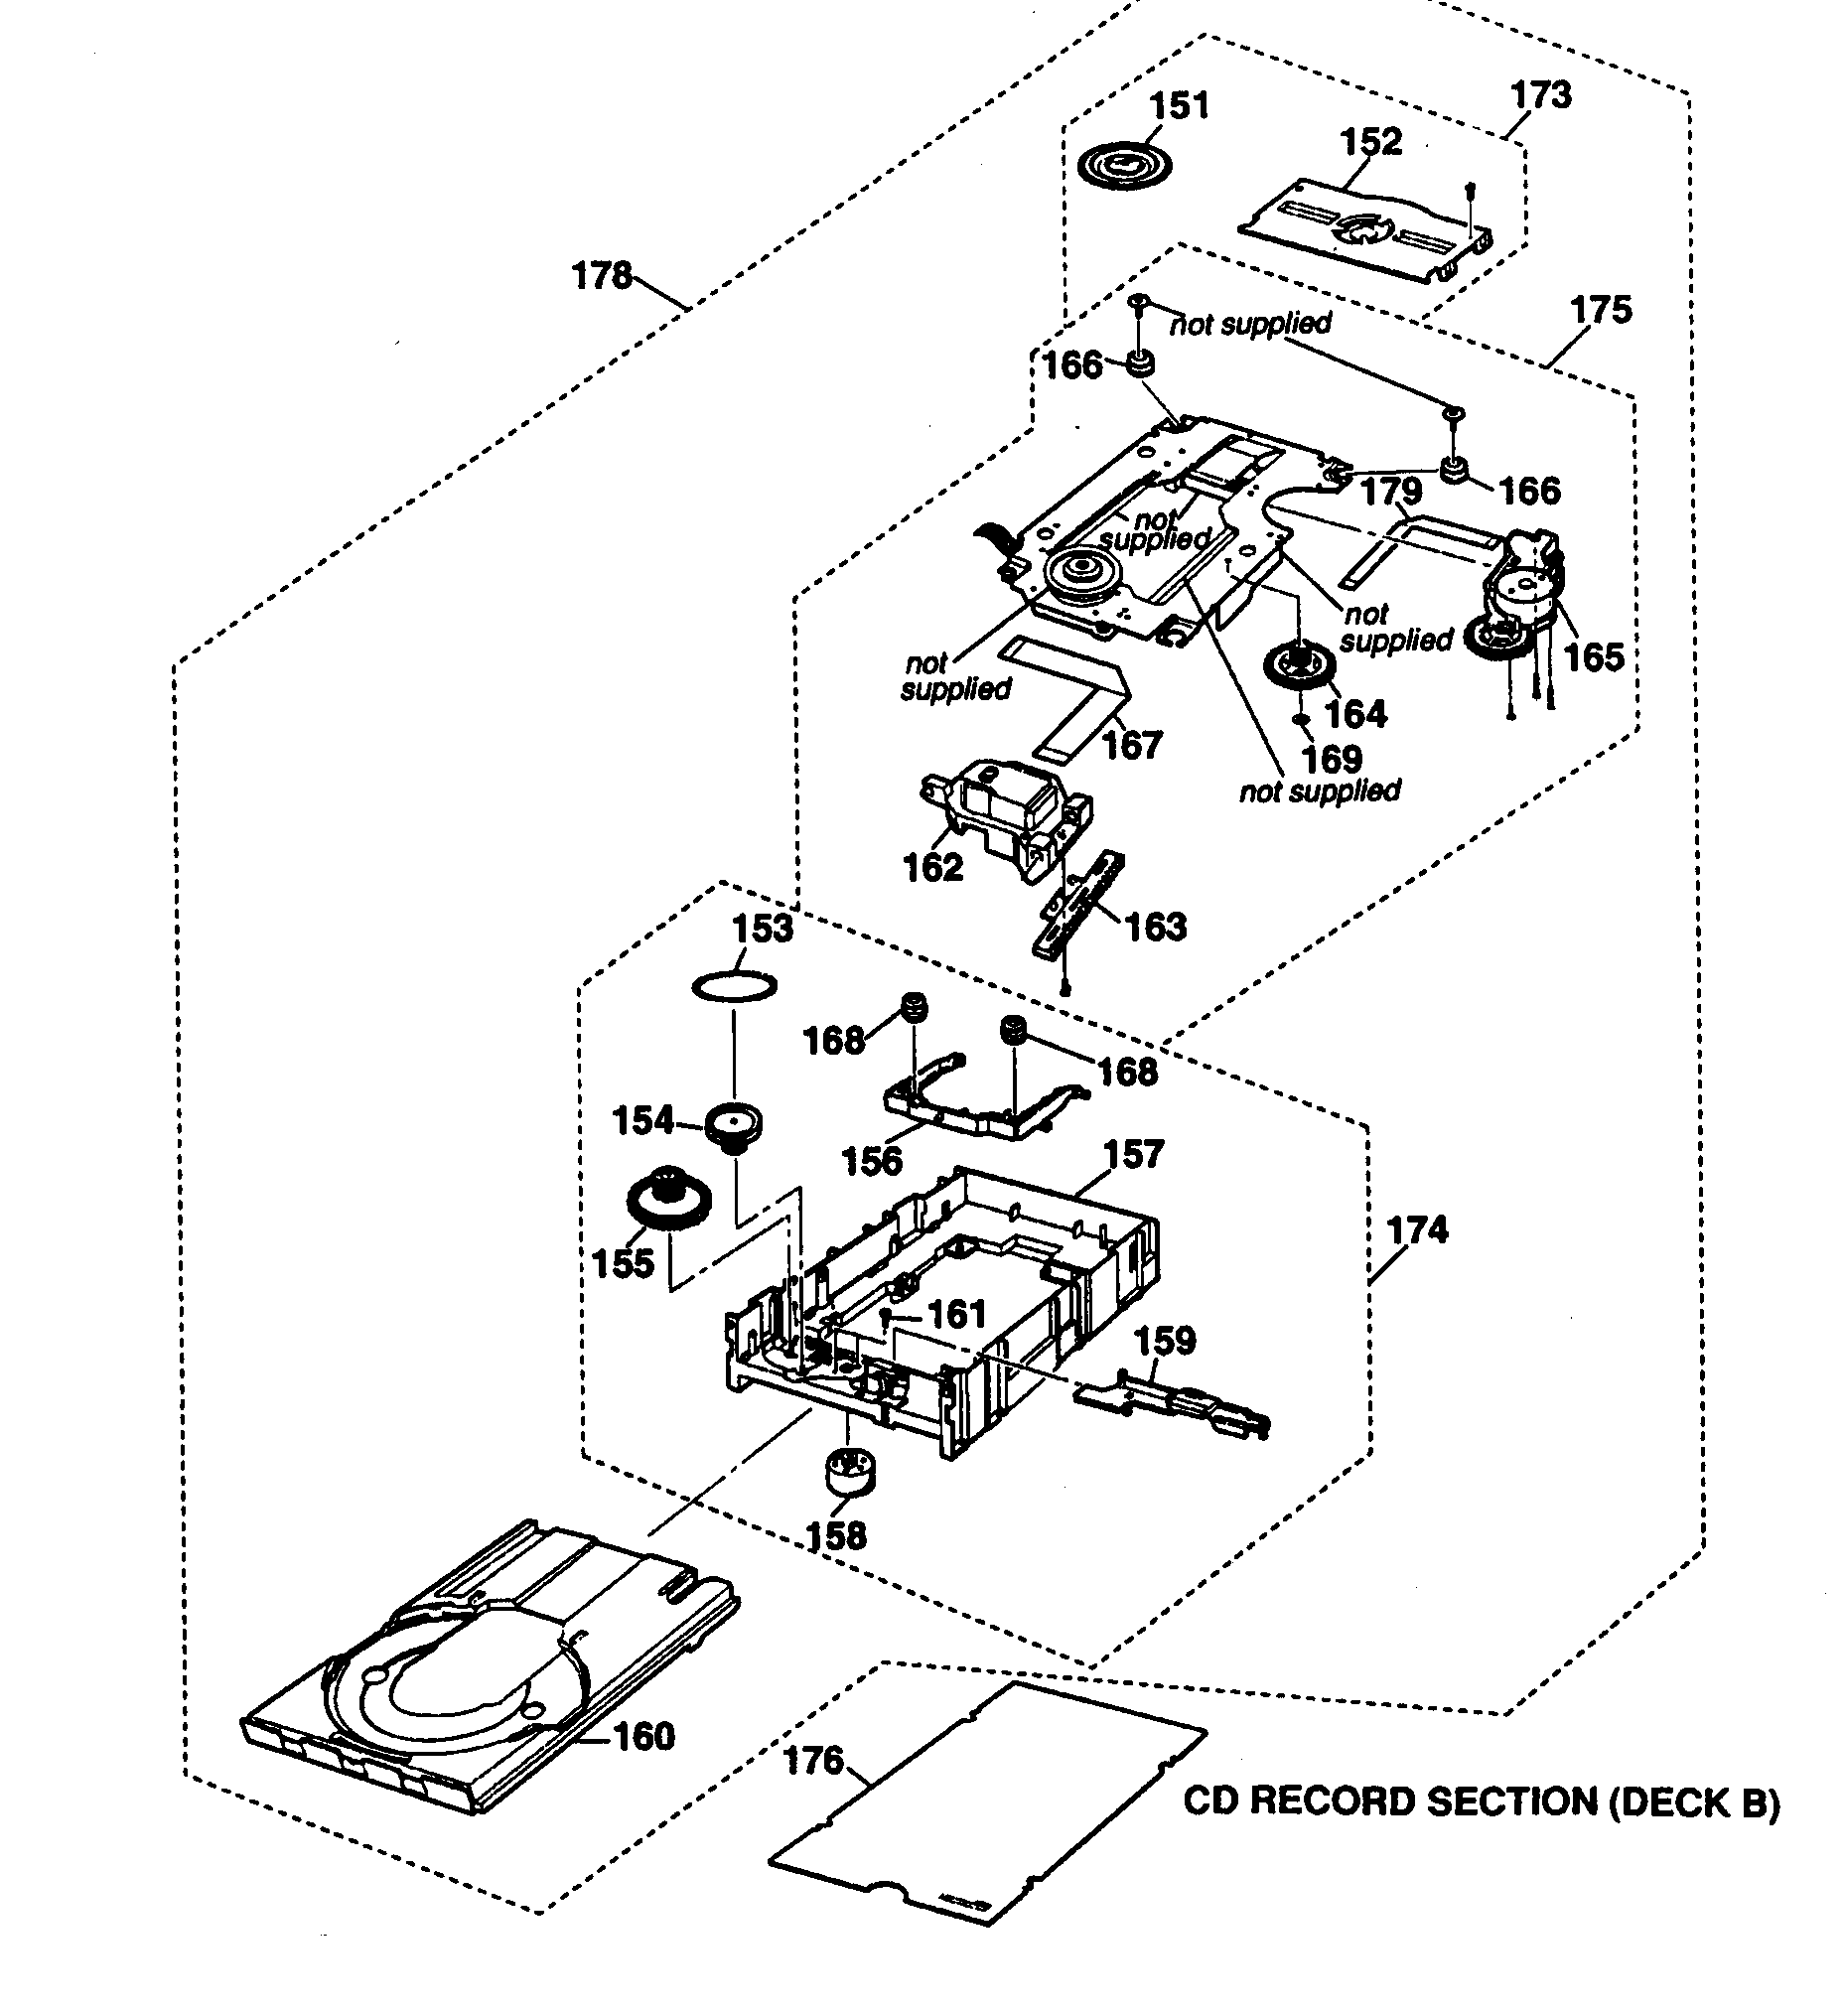 sony cd player wiring diagram lambretta electronic ignition schematic of a usb circuit diagrams